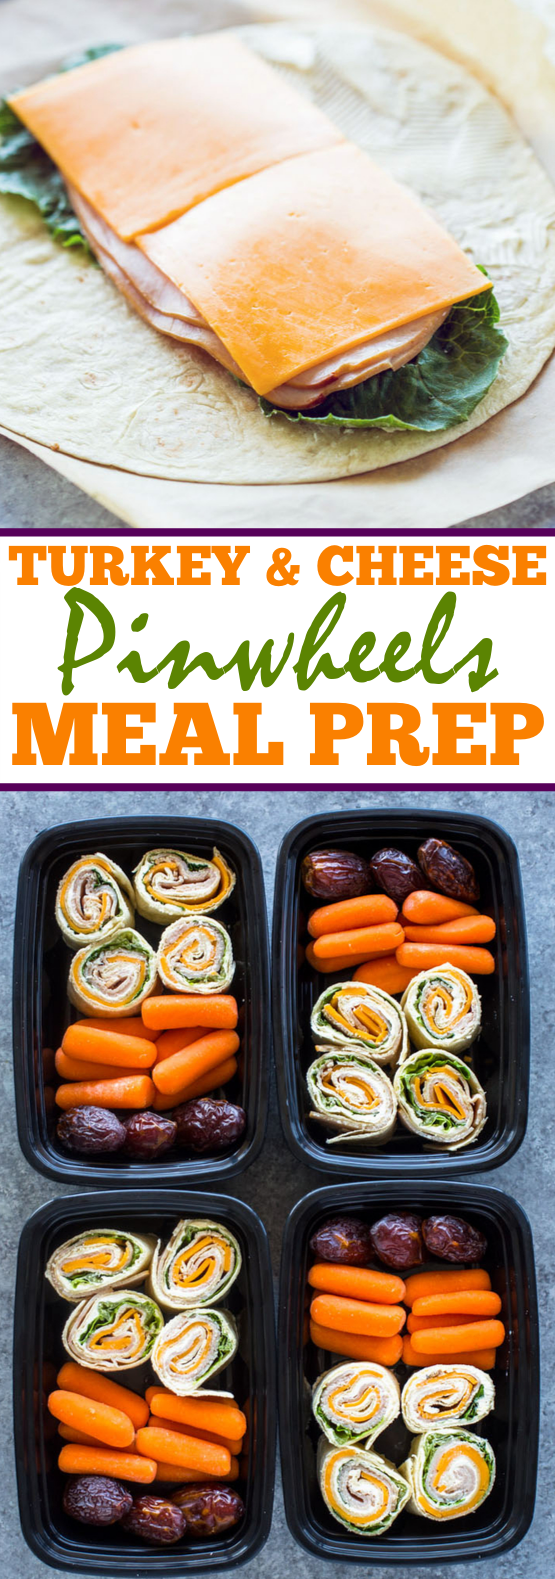 Turkey and Cheese Pinwheels (Meal-Prep Idea) #lunch #dinner